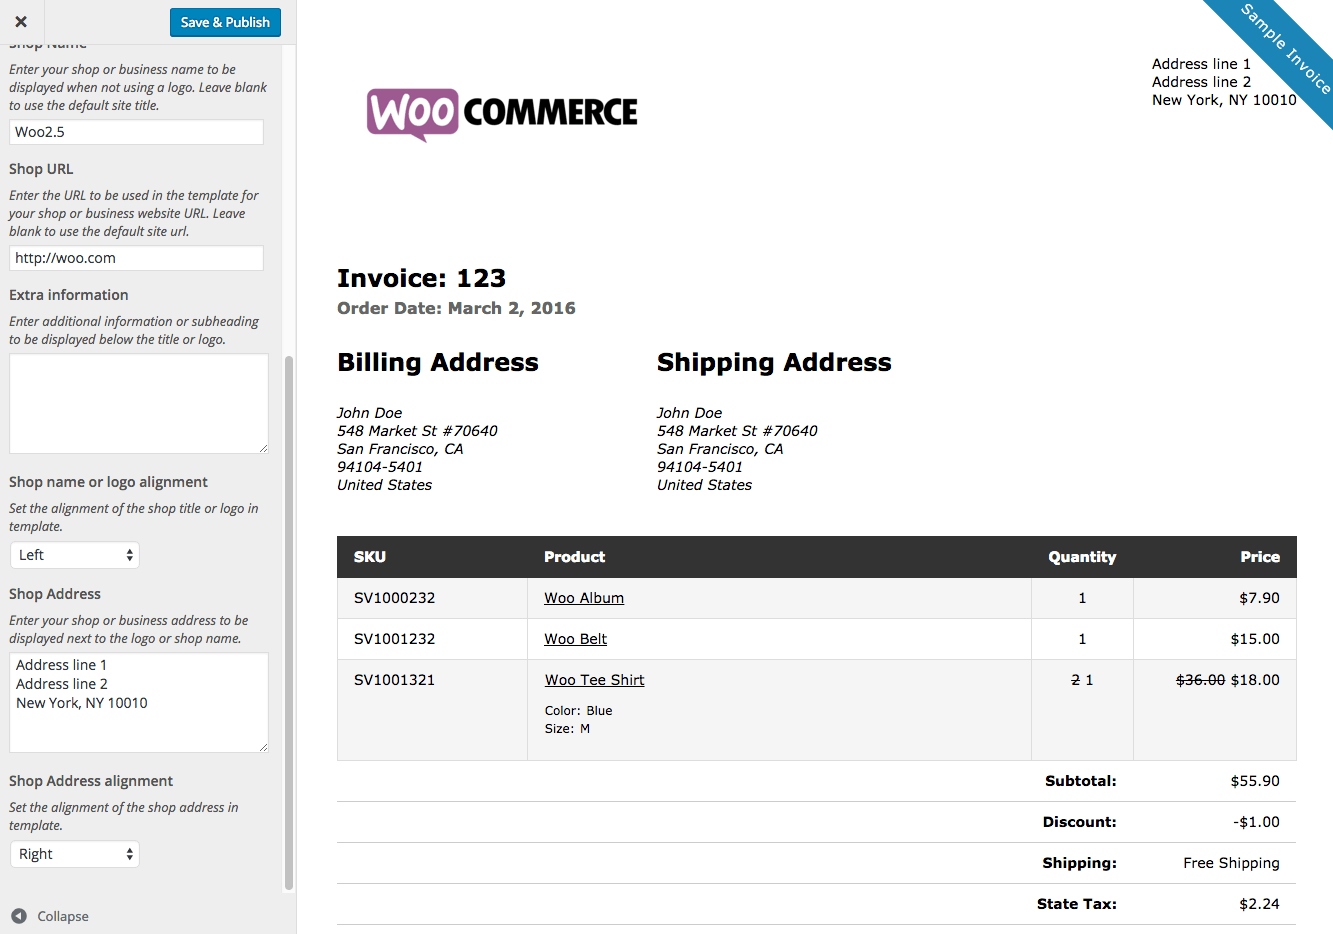 Shopdesignsus  Winning Print Invoices Amp Packing Lists  Woocommerce With Lovable Woocommerce Print Invoices  Packing Lists Customizer With Endearing  Day Invoice Also Invoice Value Of Cars In Addition Css Invoice Template And Invoice Iphone App As Well As Recipient Created Tax Invoice Agreement Additionally Proforma Invoice For Advance Payment From Woocommercecom With Shopdesignsus  Lovable Print Invoices Amp Packing Lists  Woocommerce With Endearing Woocommerce Print Invoices  Packing Lists Customizer And Winning  Day Invoice Also Invoice Value Of Cars In Addition Css Invoice Template From Woocommercecom